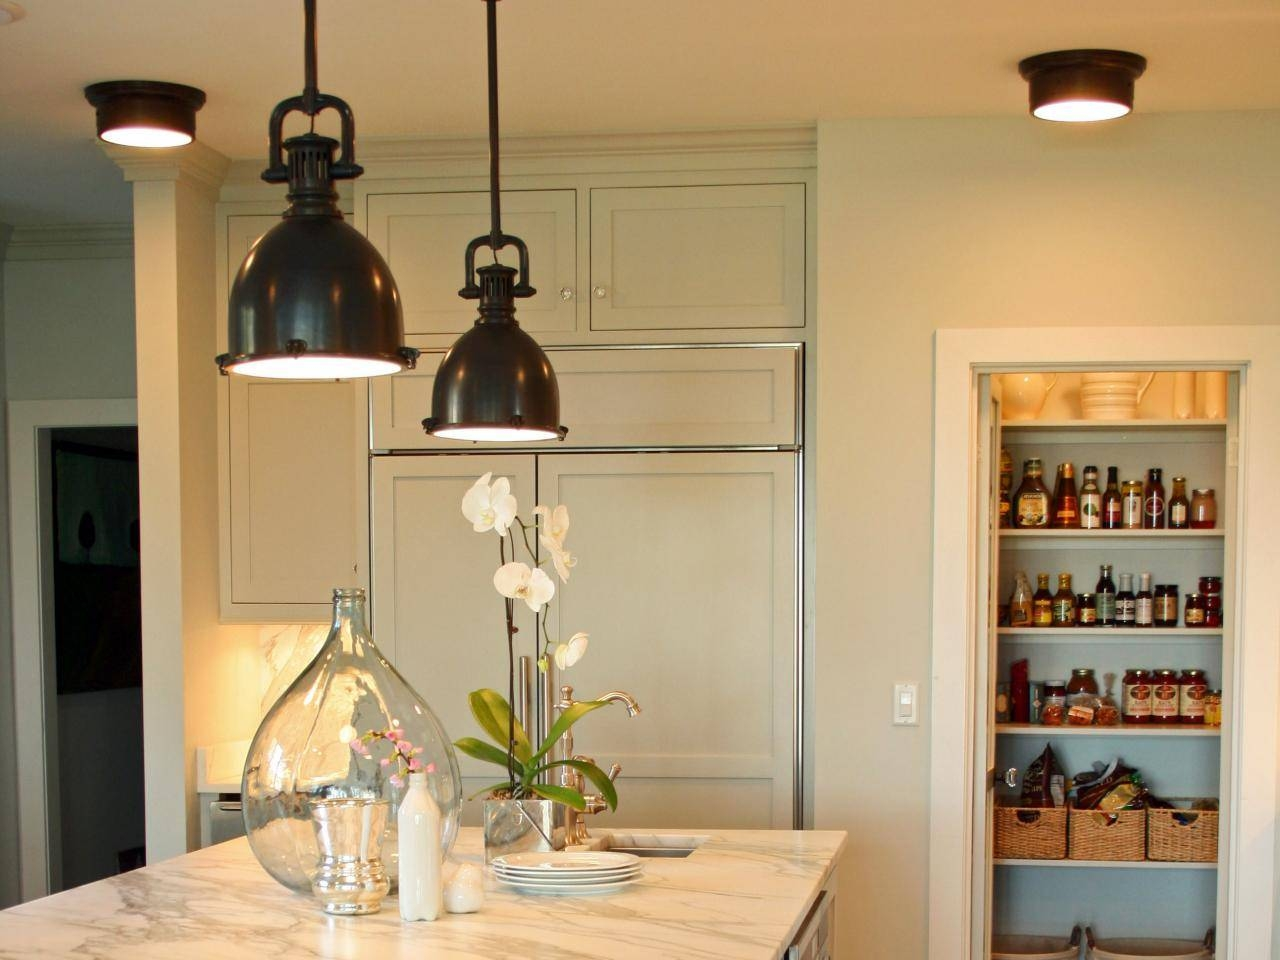 Kitchen : Kitchen Pendant Lighting Over Island Kitchen Island with Country Pendant Lighting for Kitchen (Image 9 of 15)